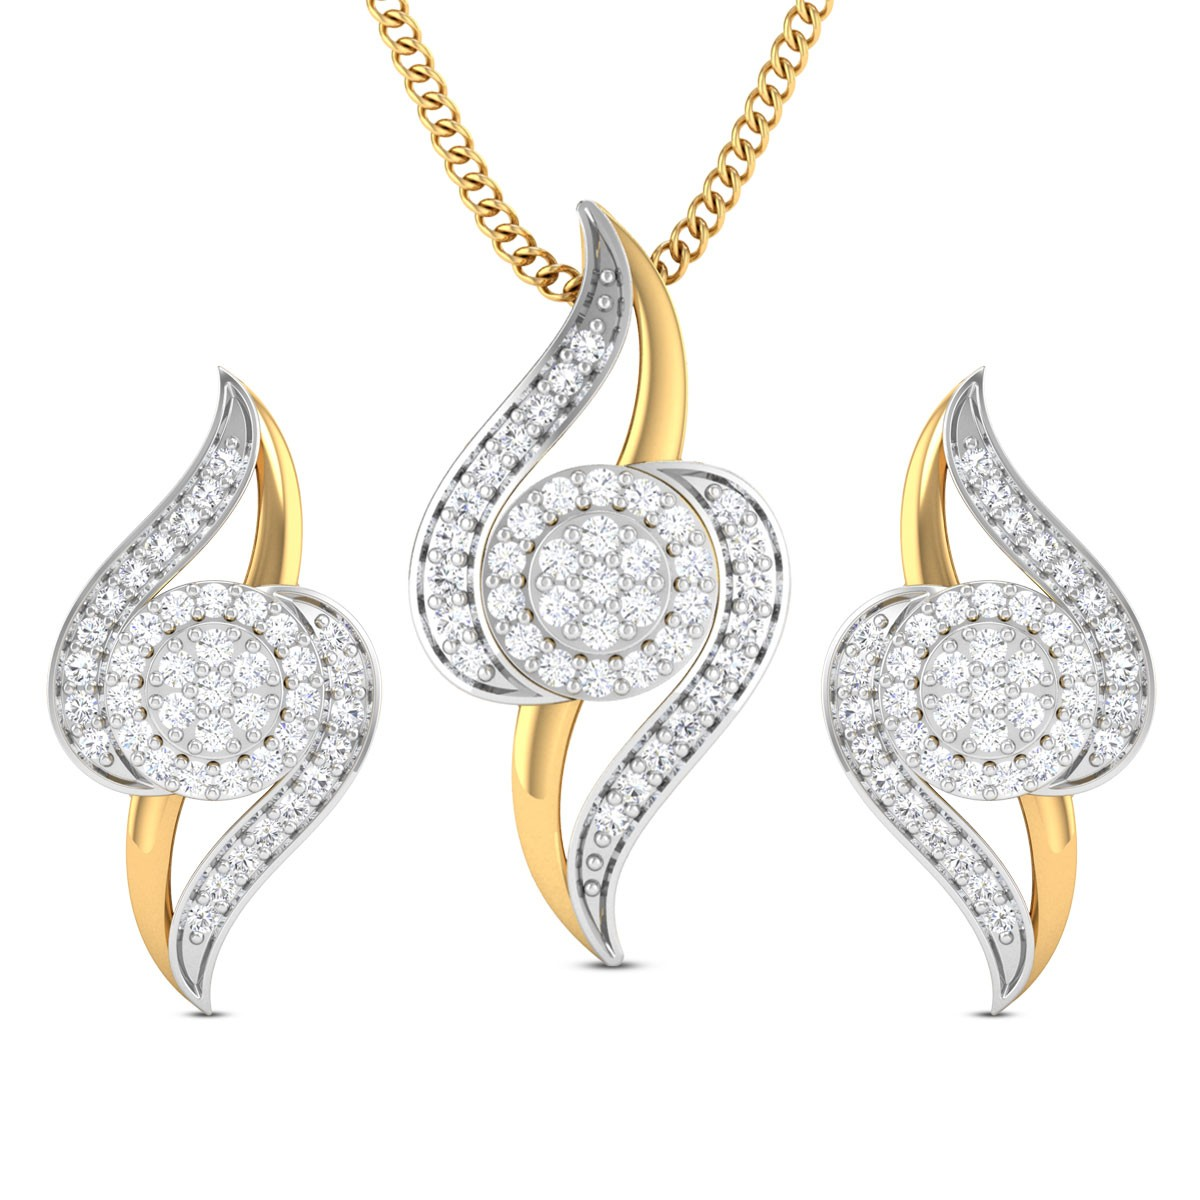 Nira Diamond Pendant Set